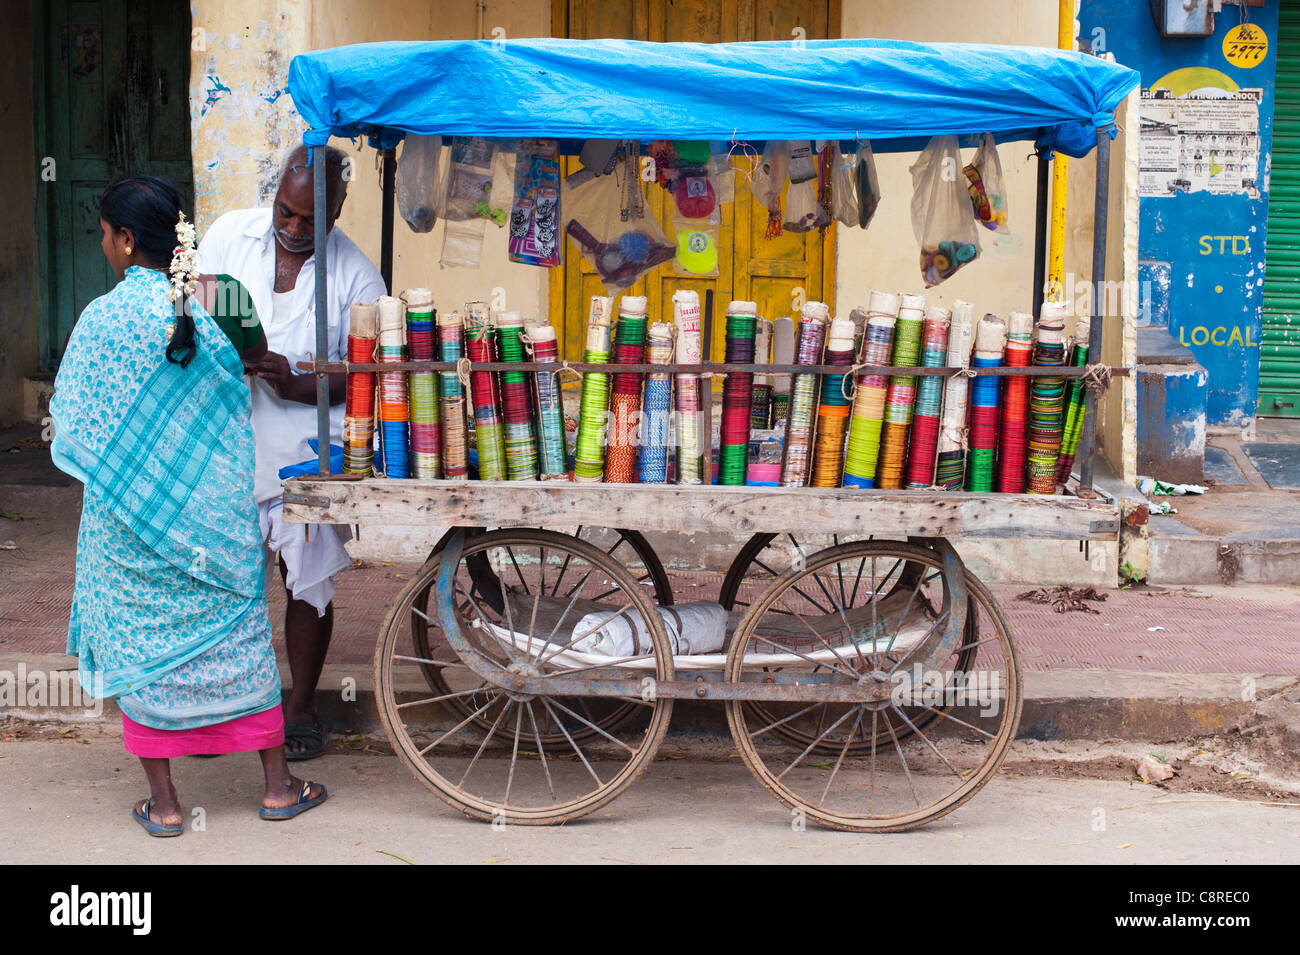 Indian man selling bangles from a wooden cart on an indian street puttaparthi andhra